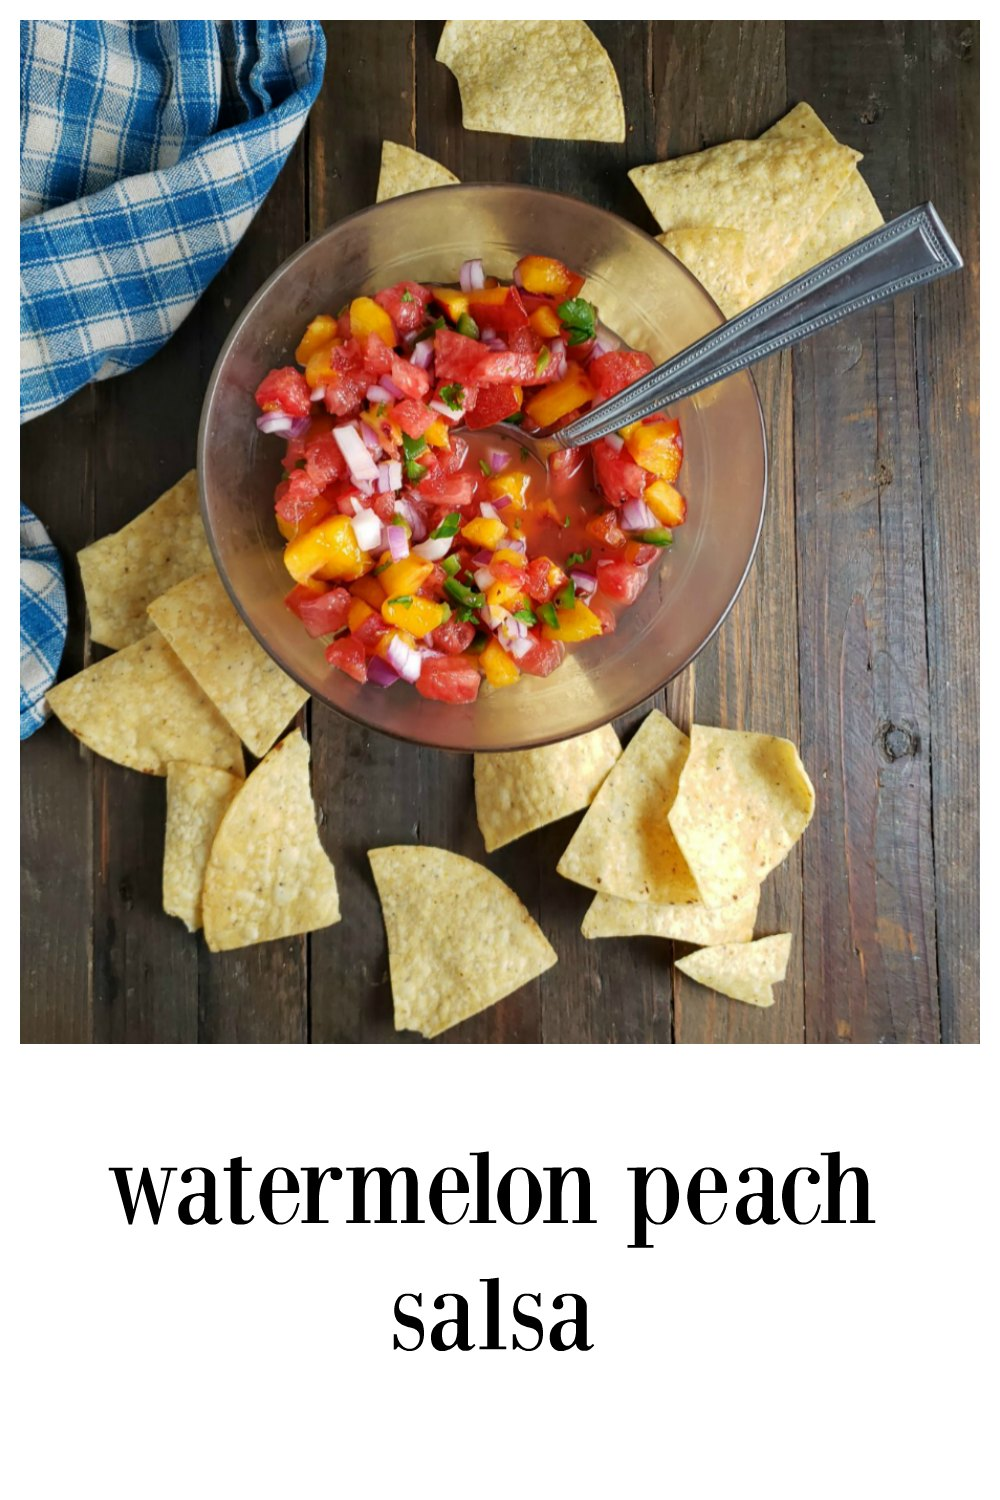 Watermelon Peach Salsa is fresh, tangy, bright. Use with any spicy fish or chicken, great on street tacos, salmon, jerk chicken! #WatermelonPeachSalsa #Salsa #WatermelonSalsa